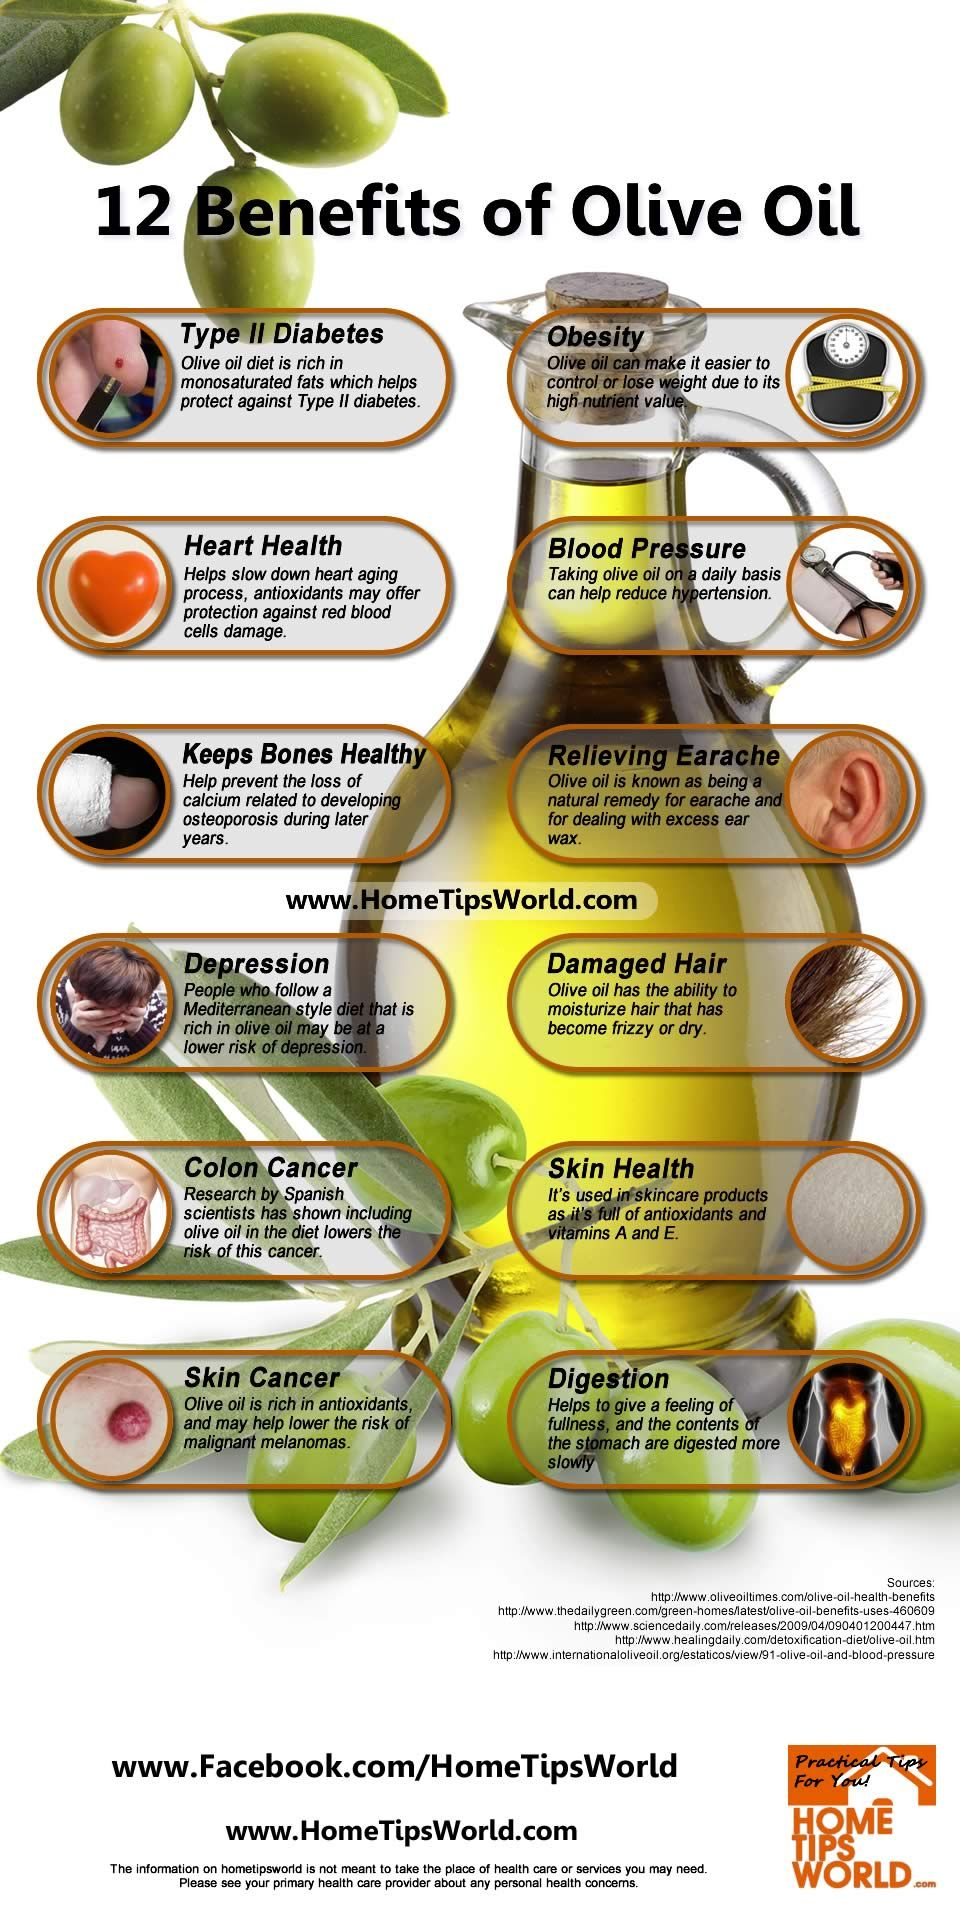 12 Benefits of Olive Oil ¤ Clinical studies have shown